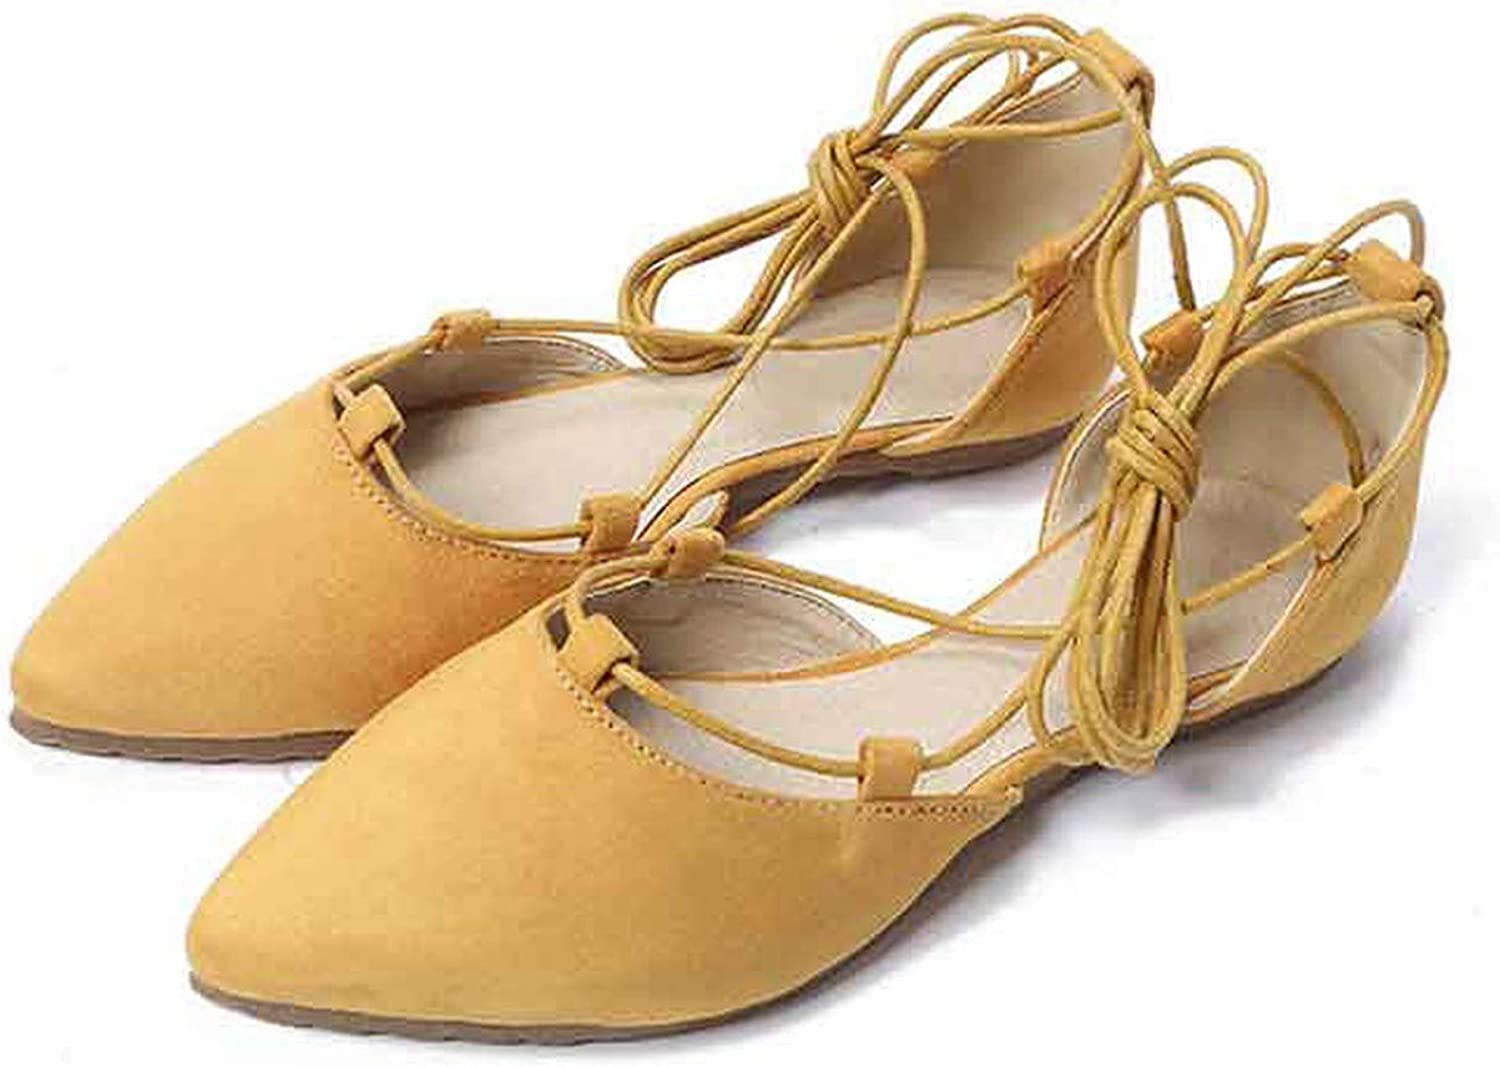 Yeenvan Summer Sandals Women Pointed Cross Raps Single shoes Comfortable Flat with Shallow Mouth Women's shoes. Lx-061